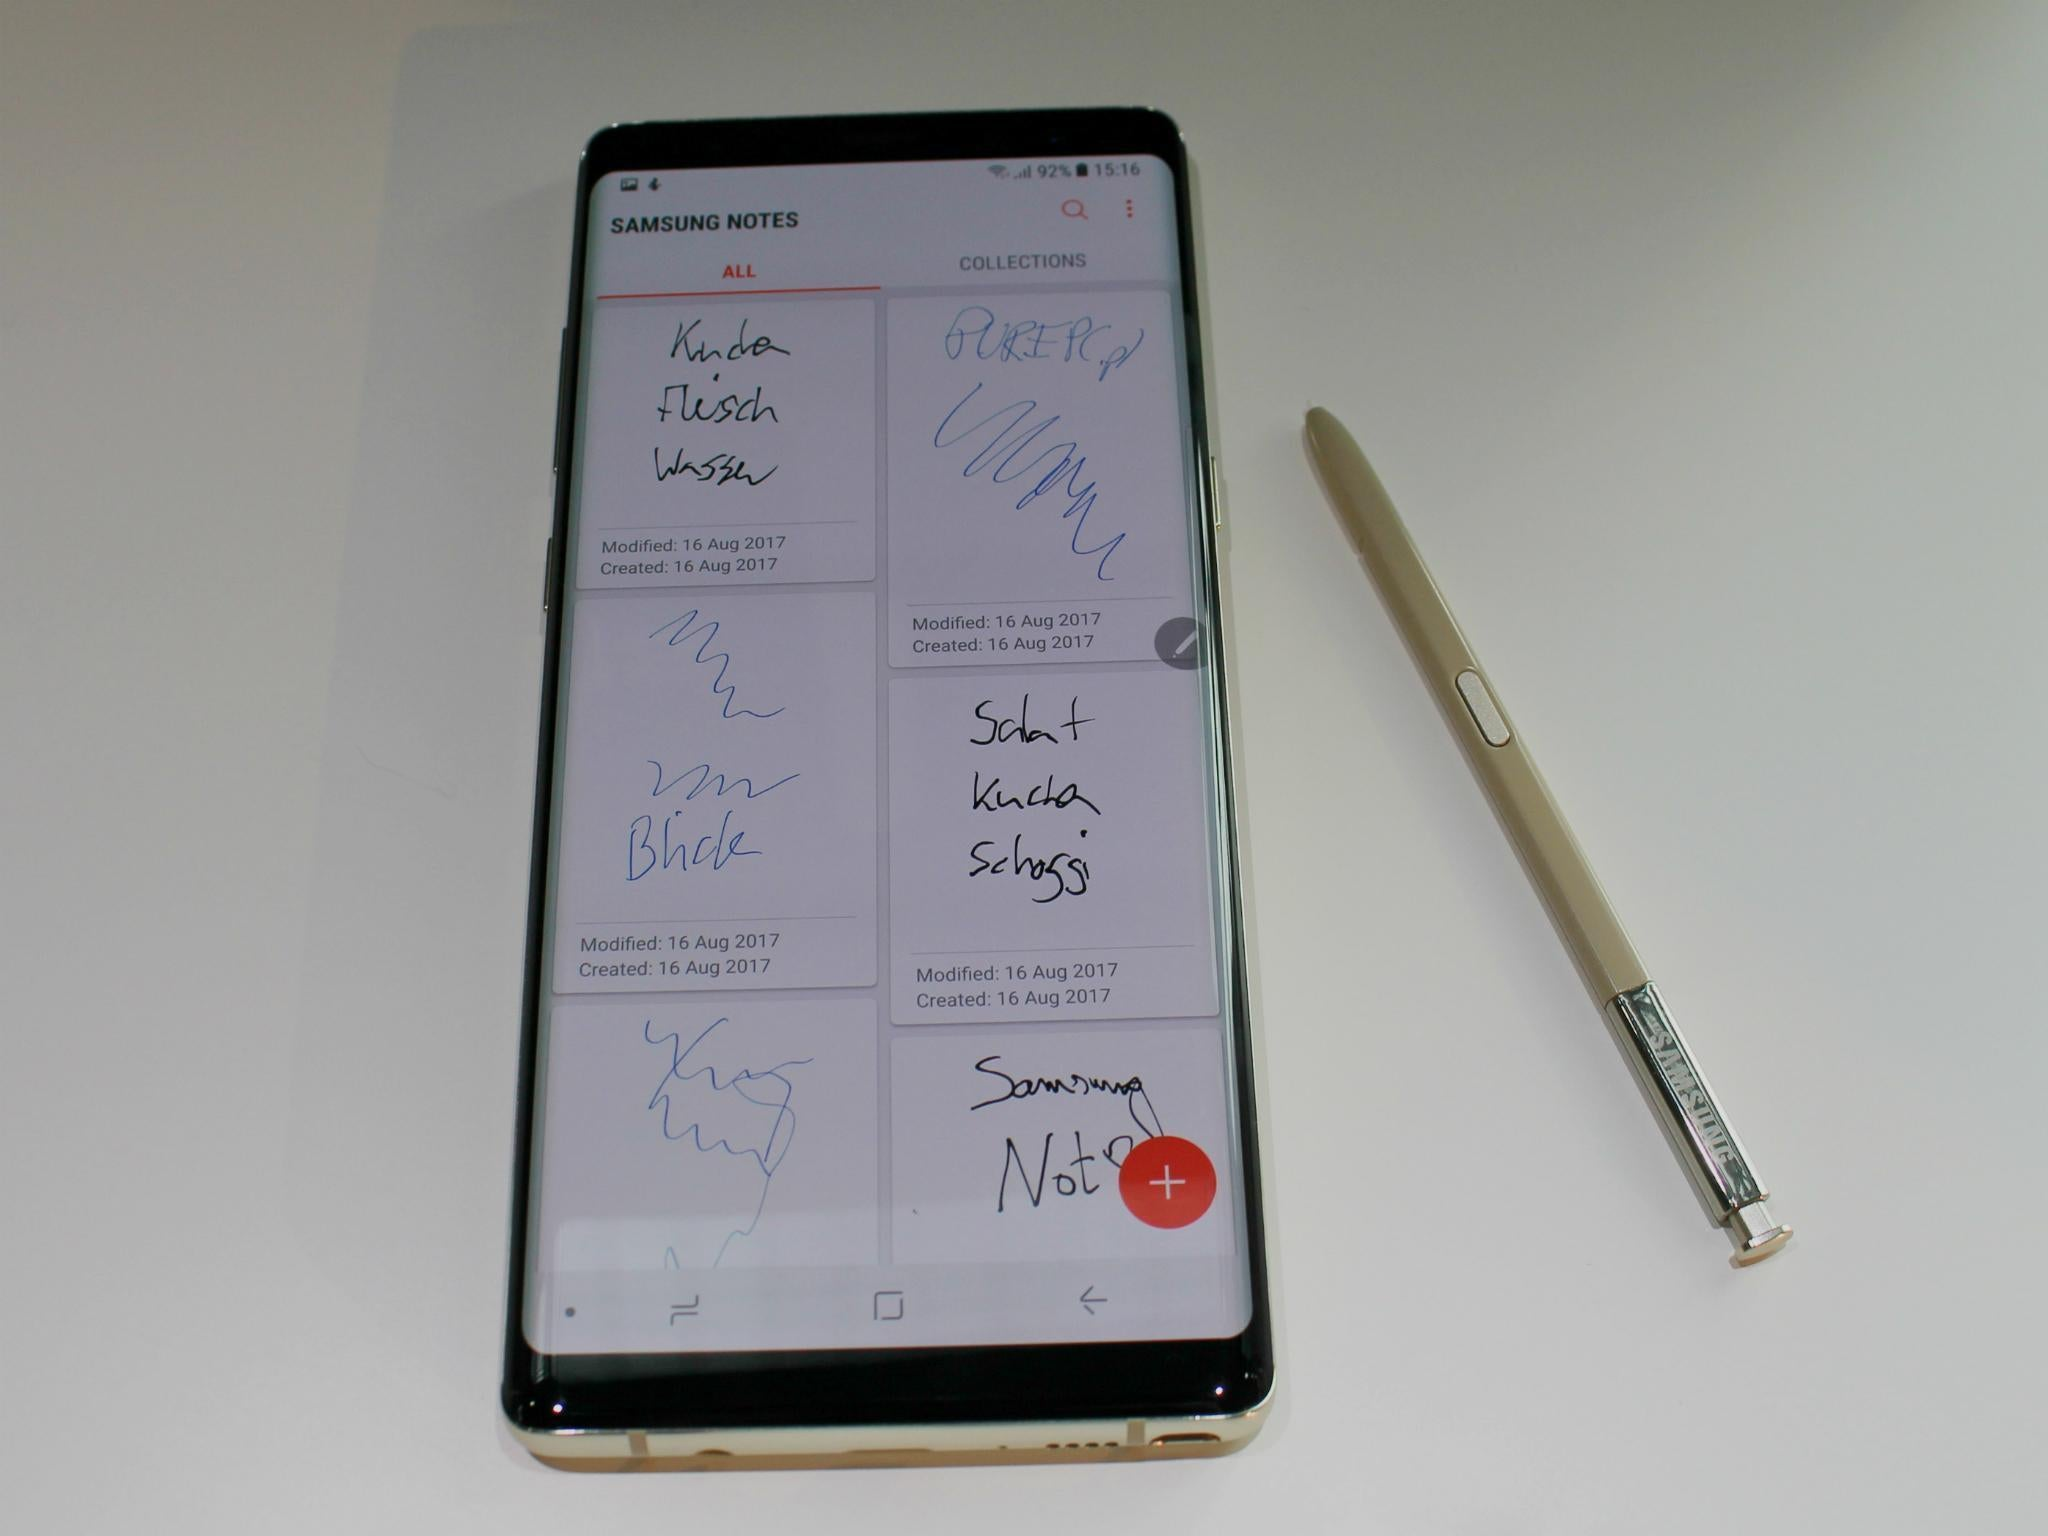 Samsung Galaxy Note 8 hands-on review: Slick and beautiful